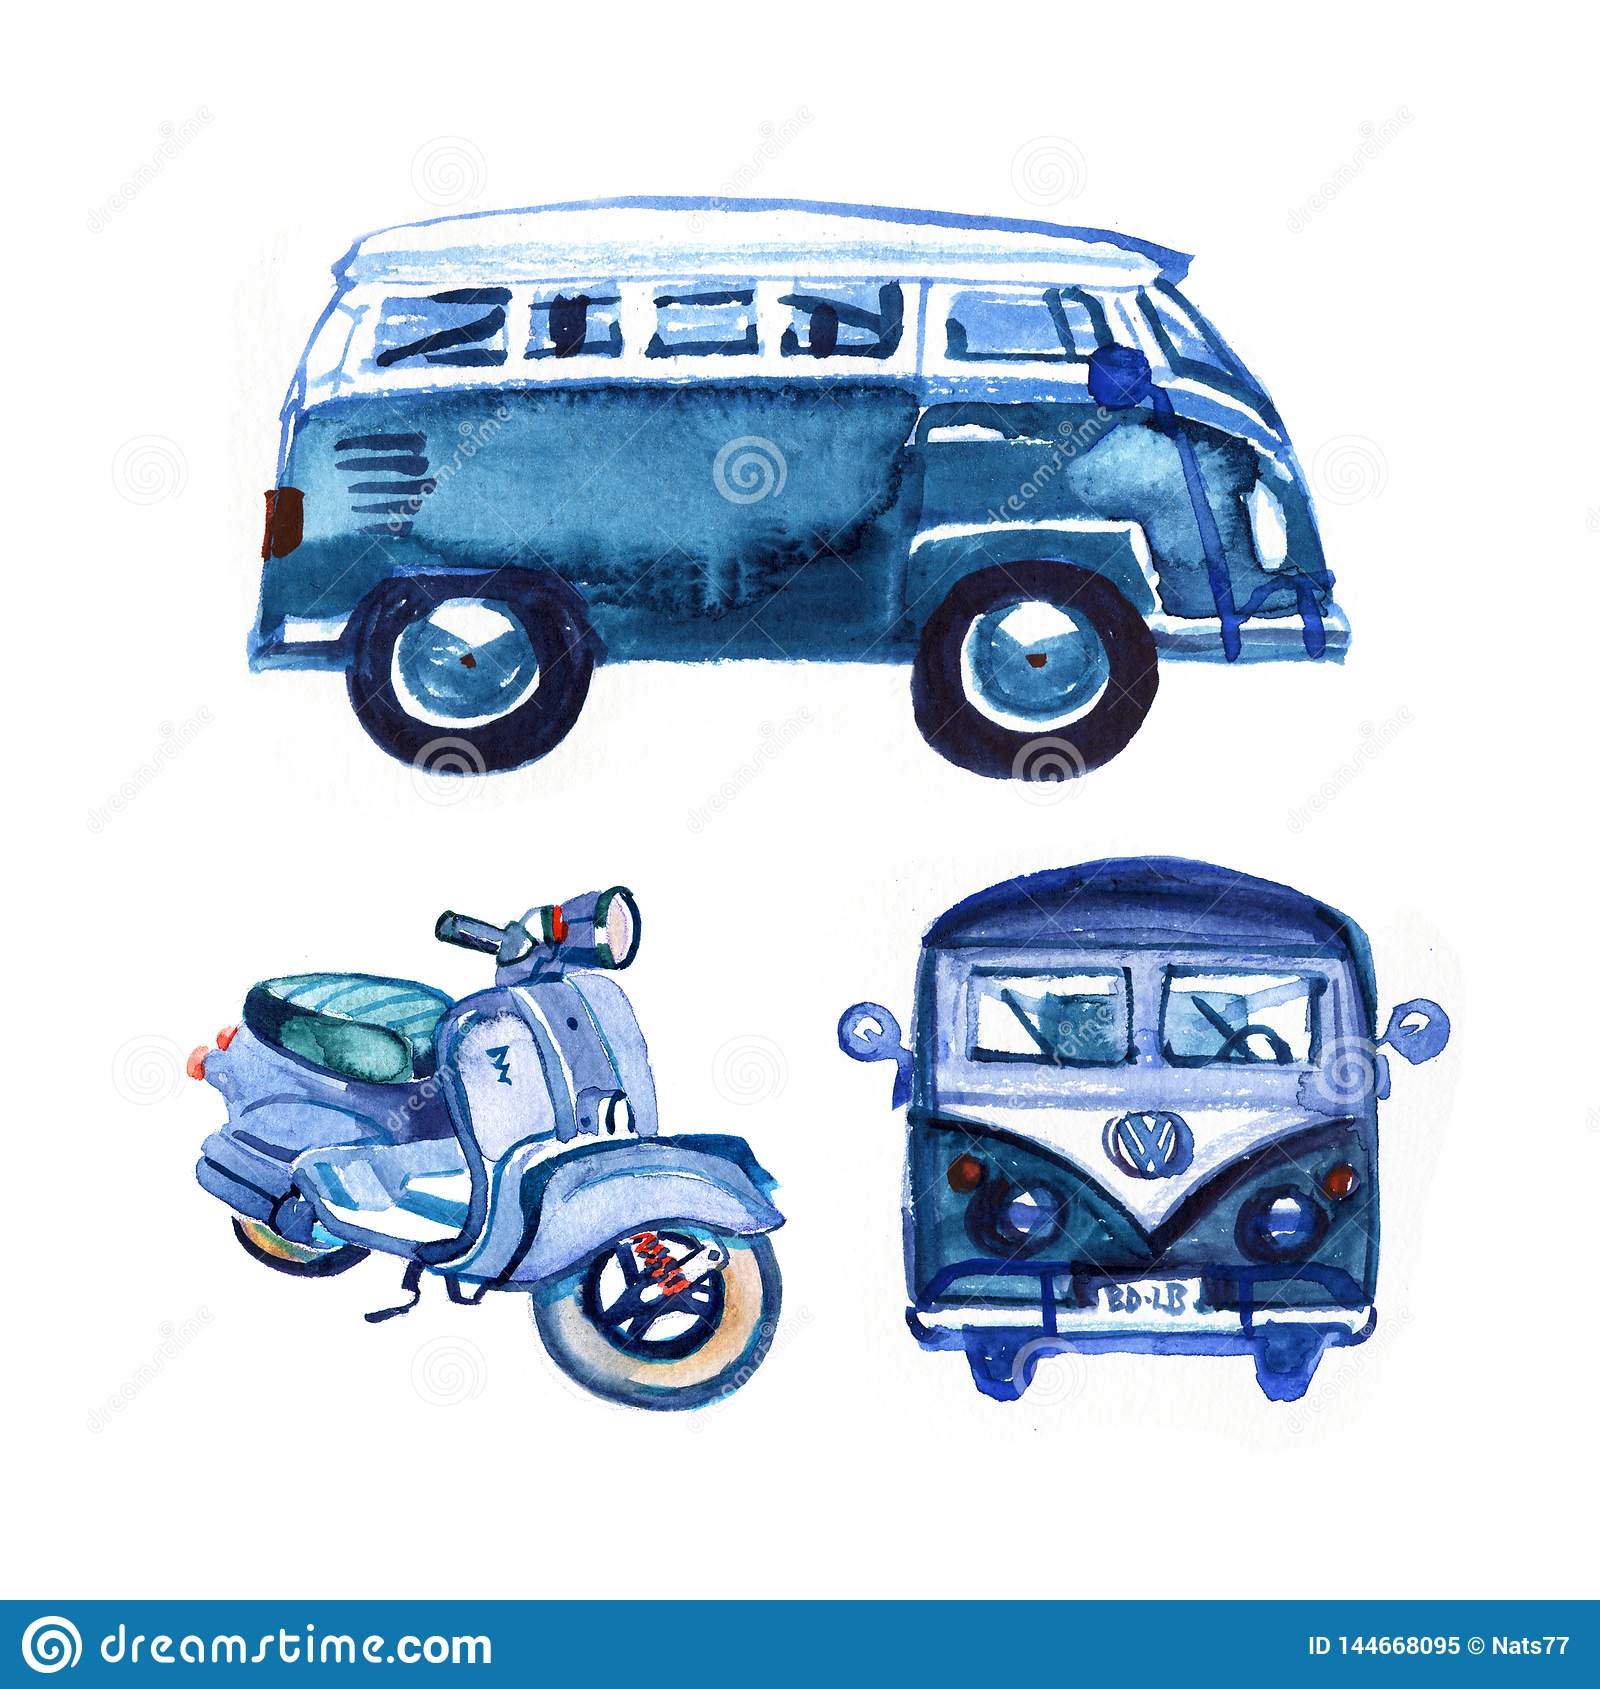 Watercolor vintage retro blue van and bike, isolated on white background